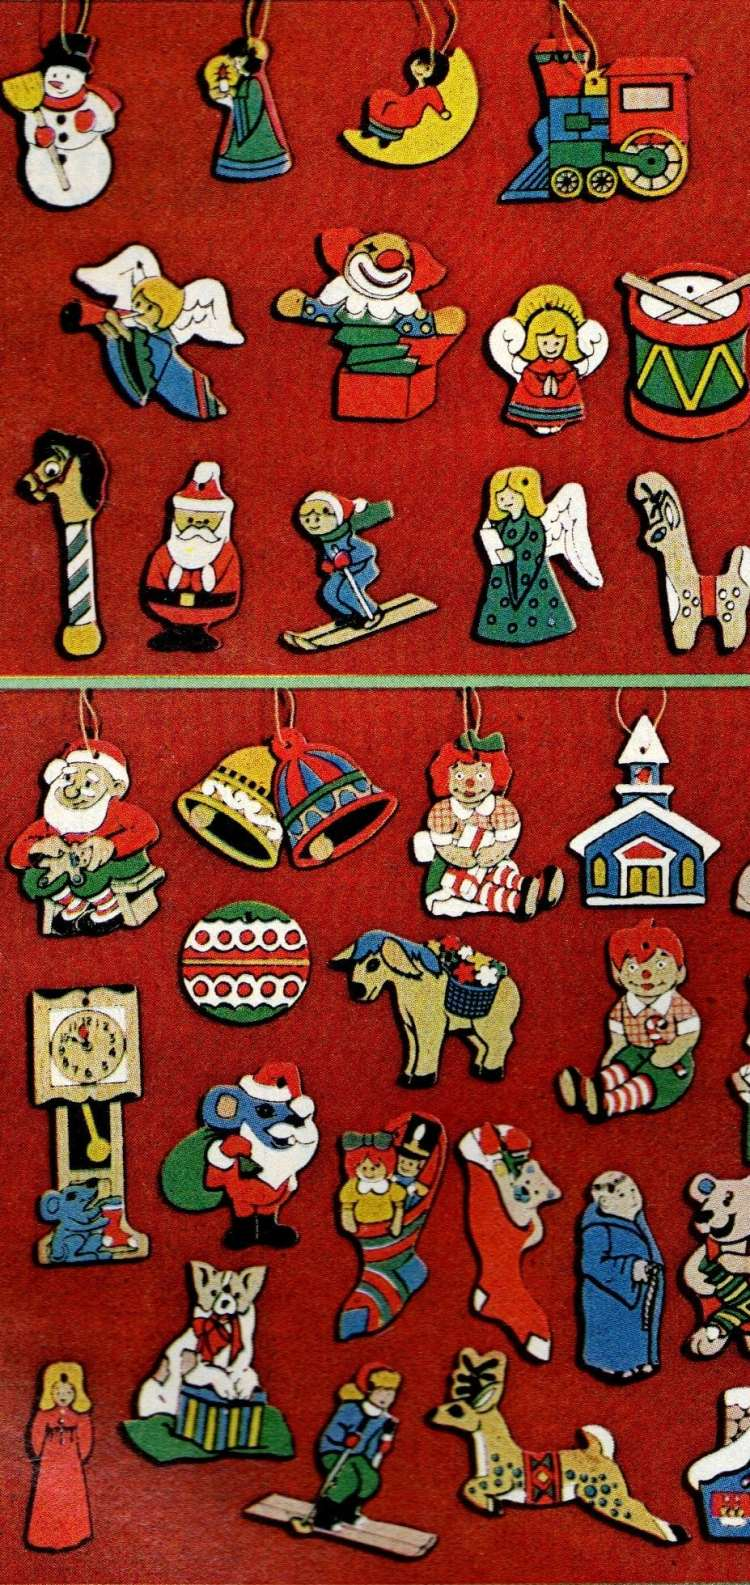 Little Christmas ornament sets from 1974 (3)